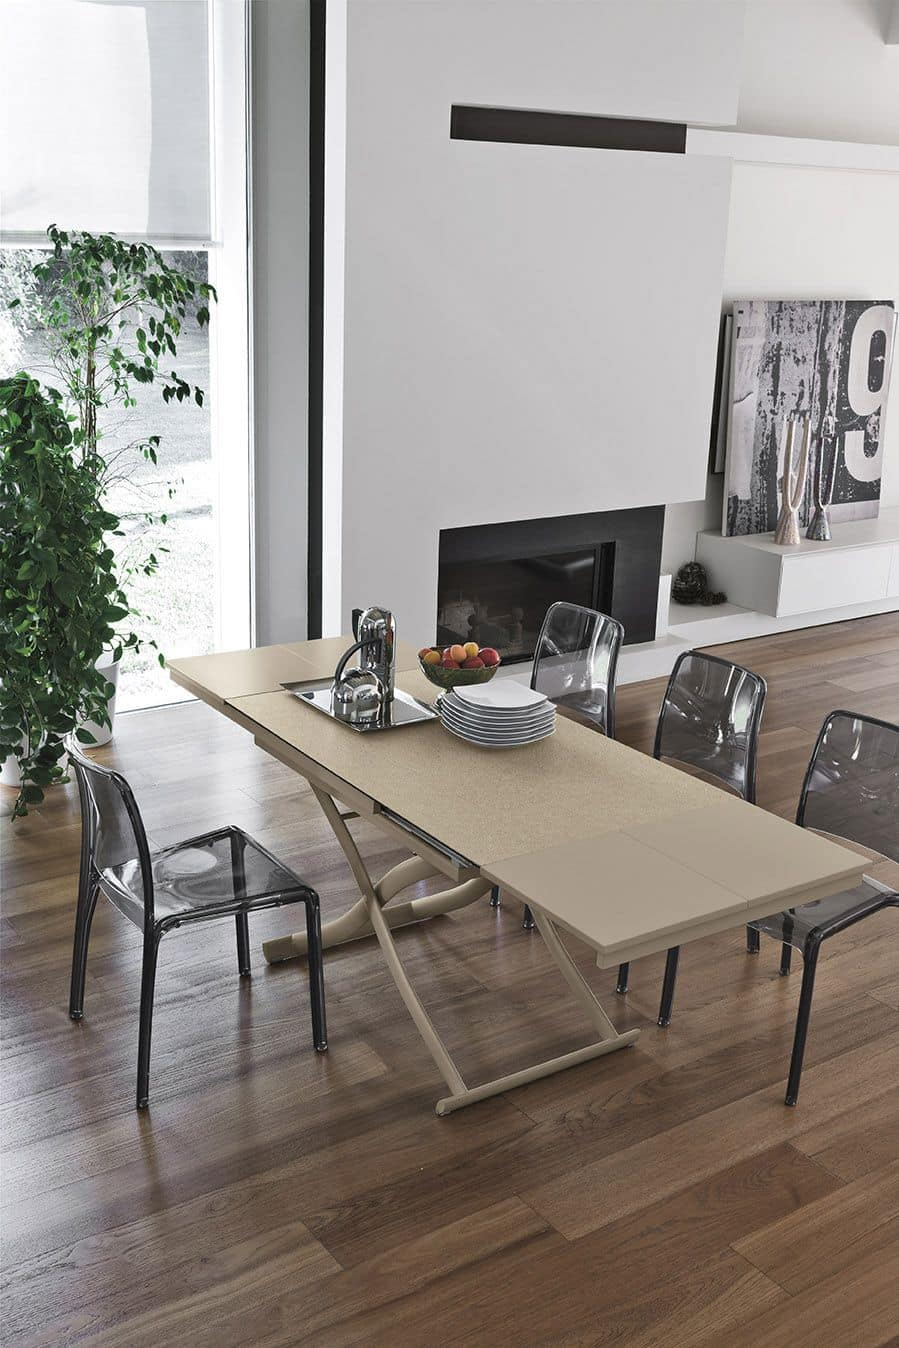 DIONE PLUS TA150, Modern consolle transformable into table, top in glass